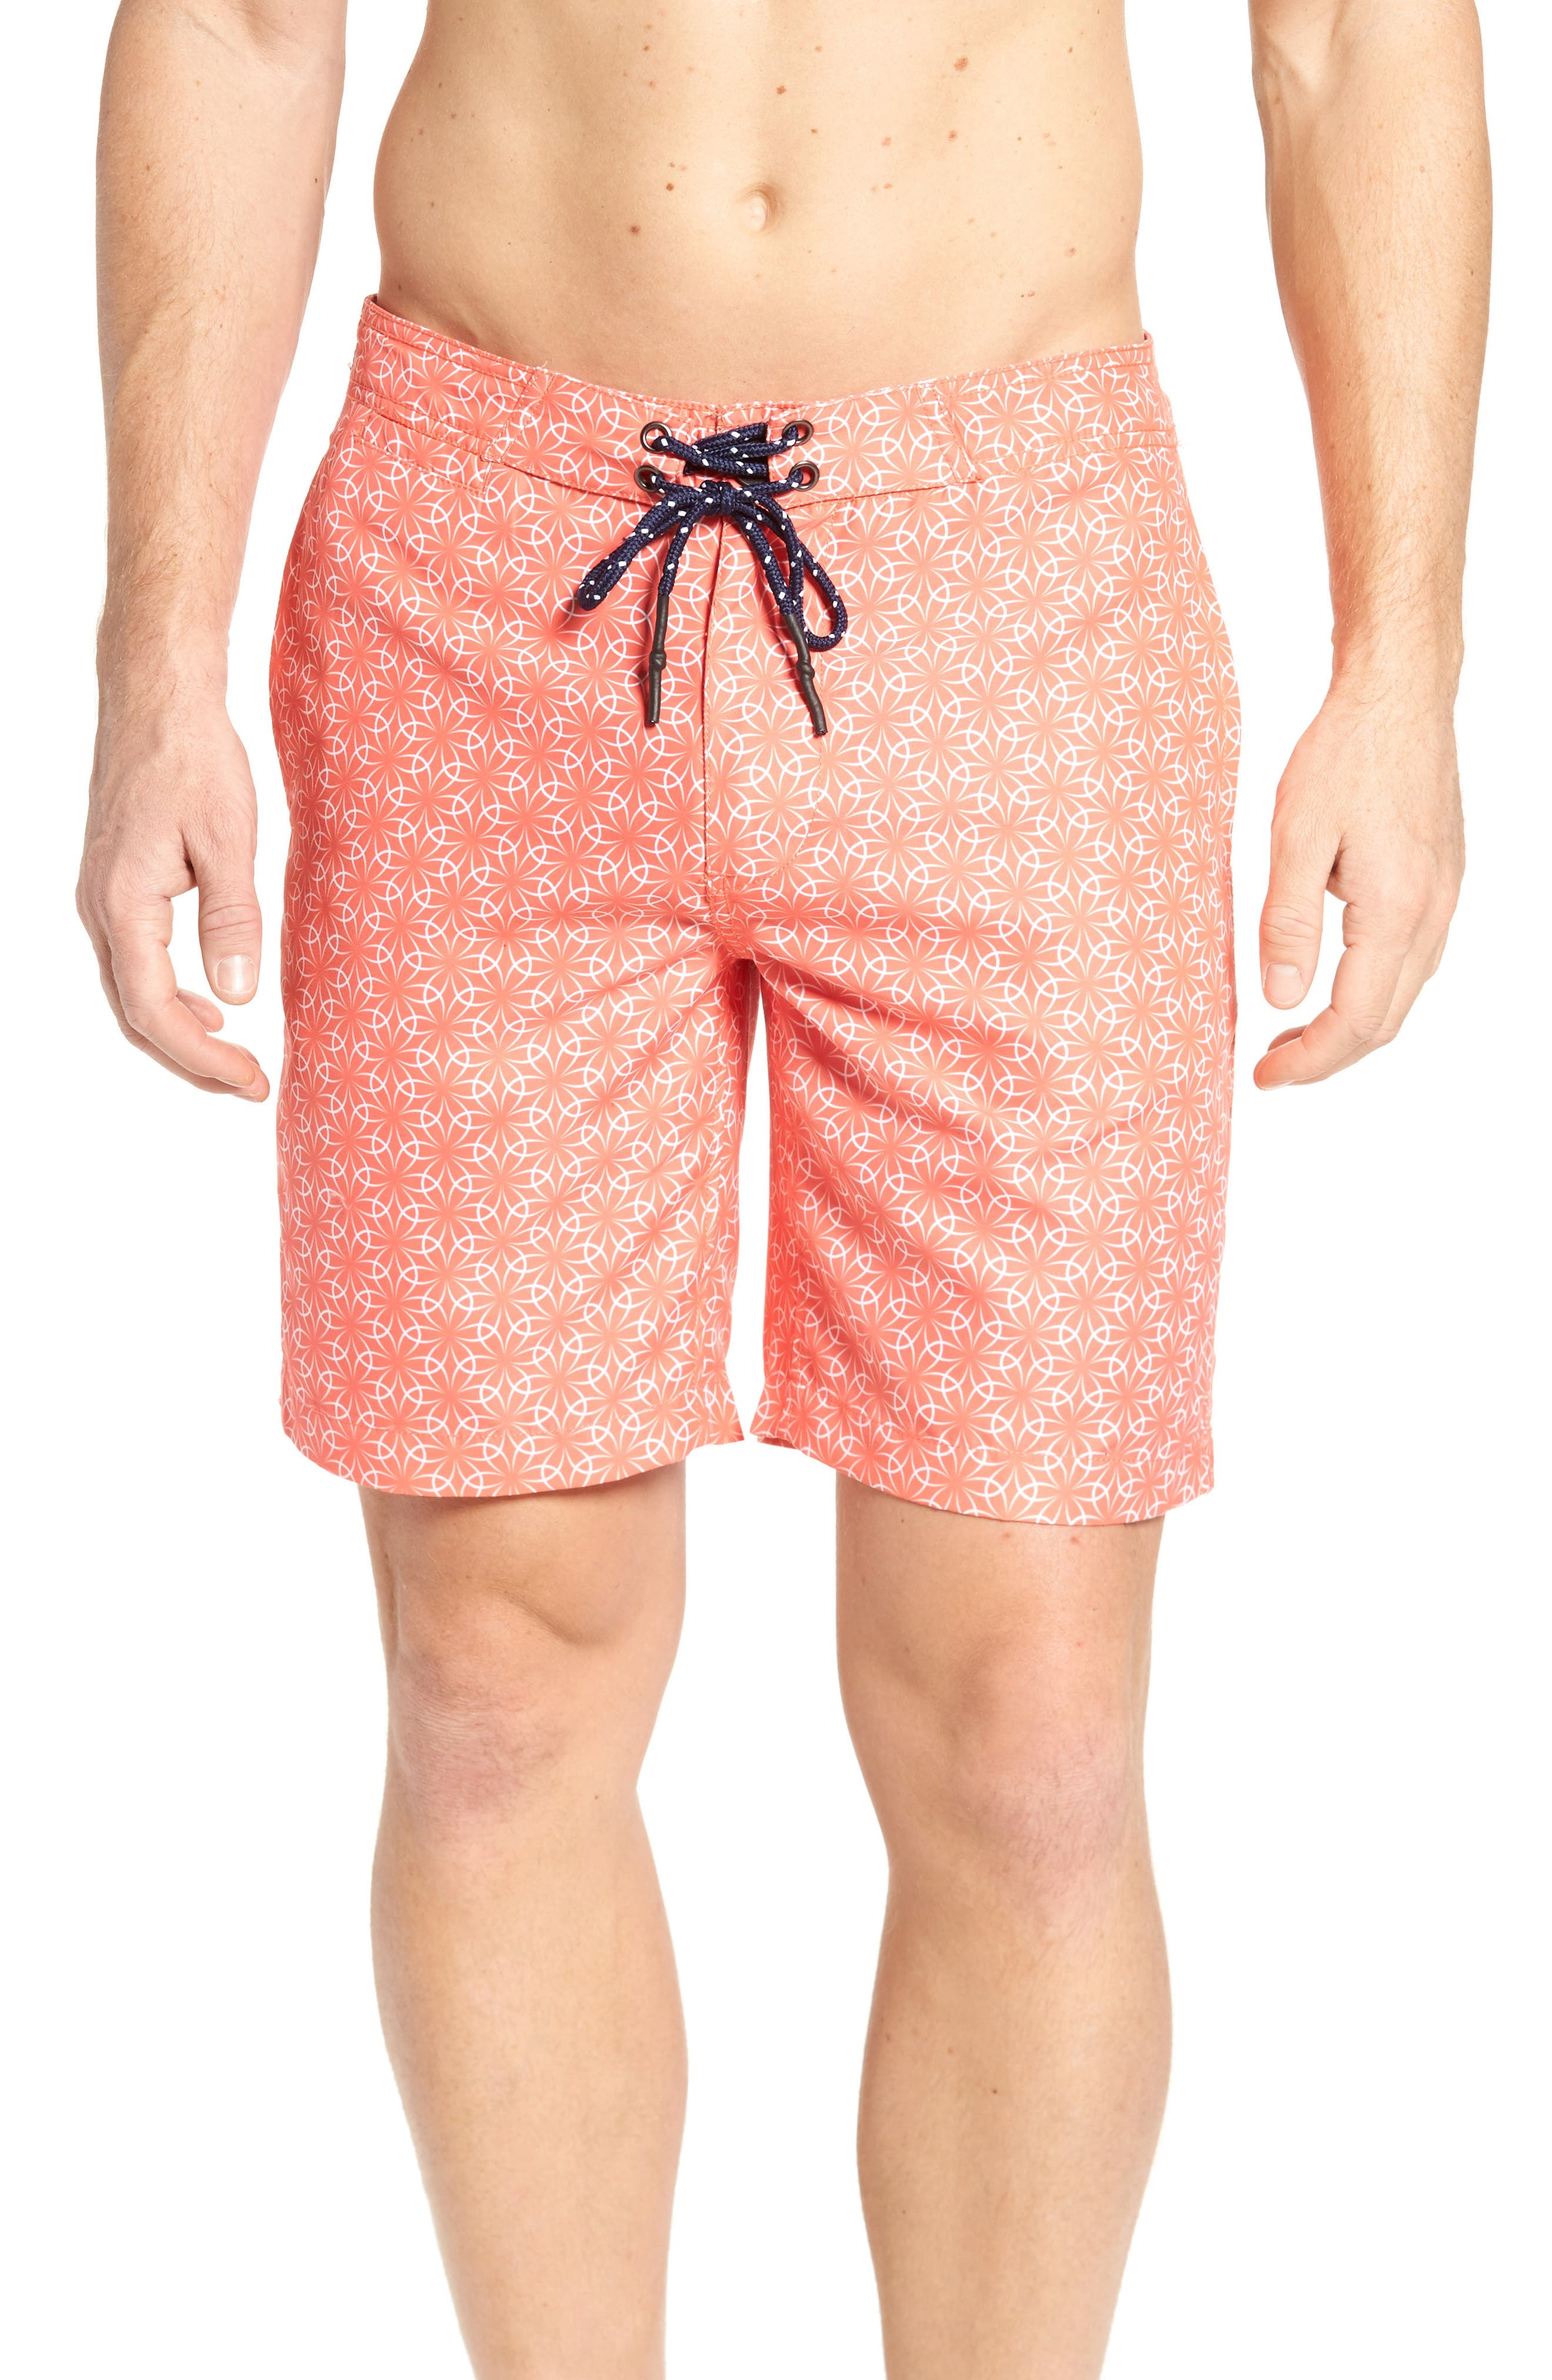 Gradient Flower Board Shorts,                         Main,                         color, Hot Coral